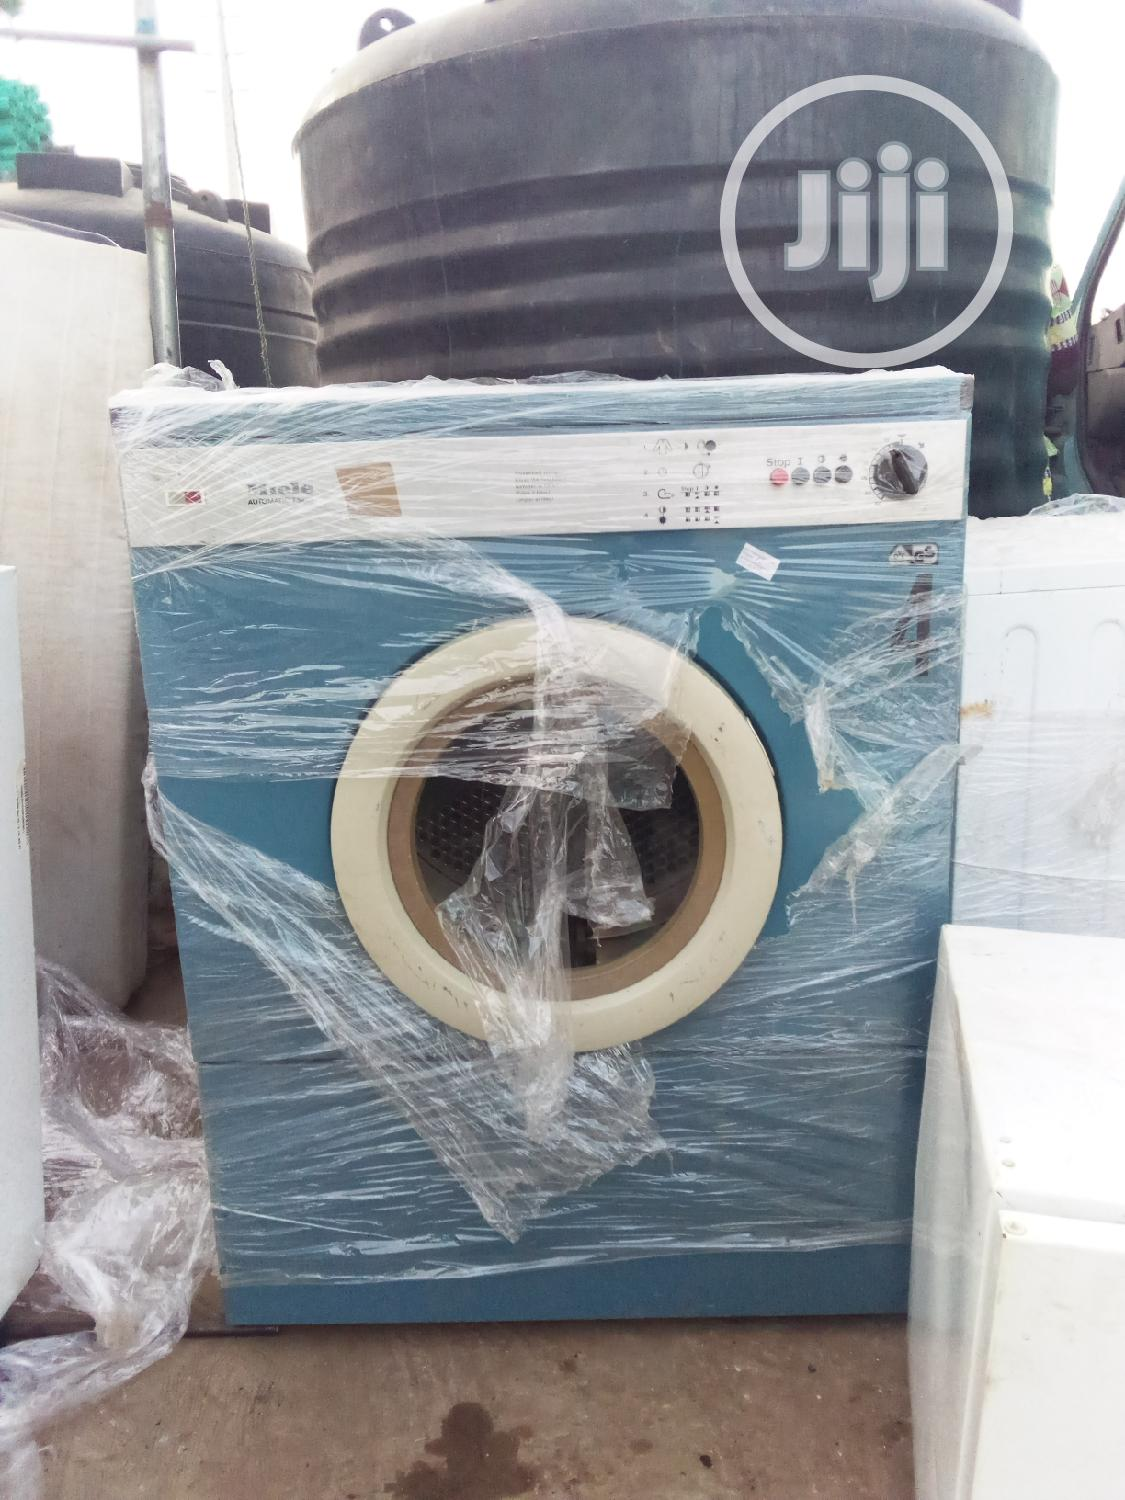 Archive: 9 Kg Laundry Extractor (Dryer) Machine